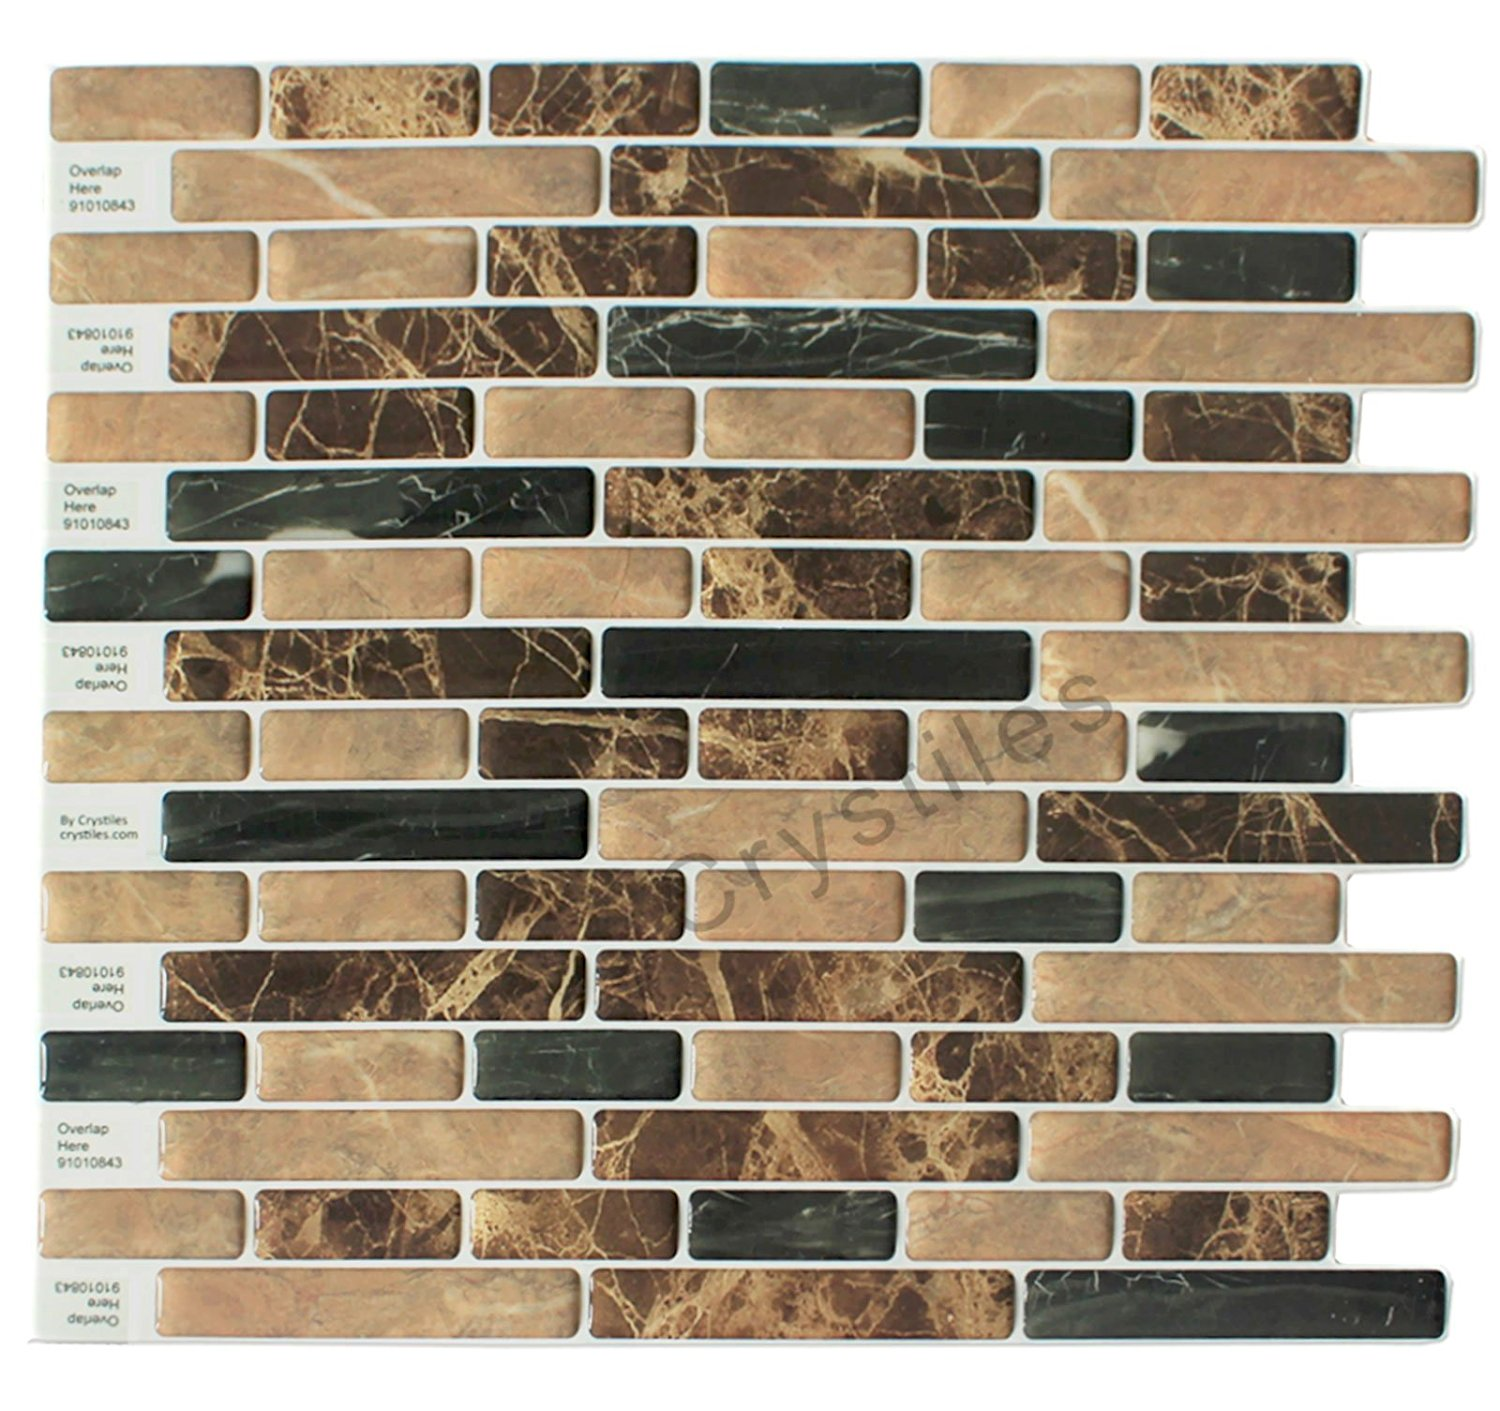 "Crystiles® Peel and Stick Self-Adhesive Stick-On Vinyl Wall Tile Backsplash, Brown and Black Marbles, Item# 91010843, 10"" X 10"" Each, 6 Sheets Pack"